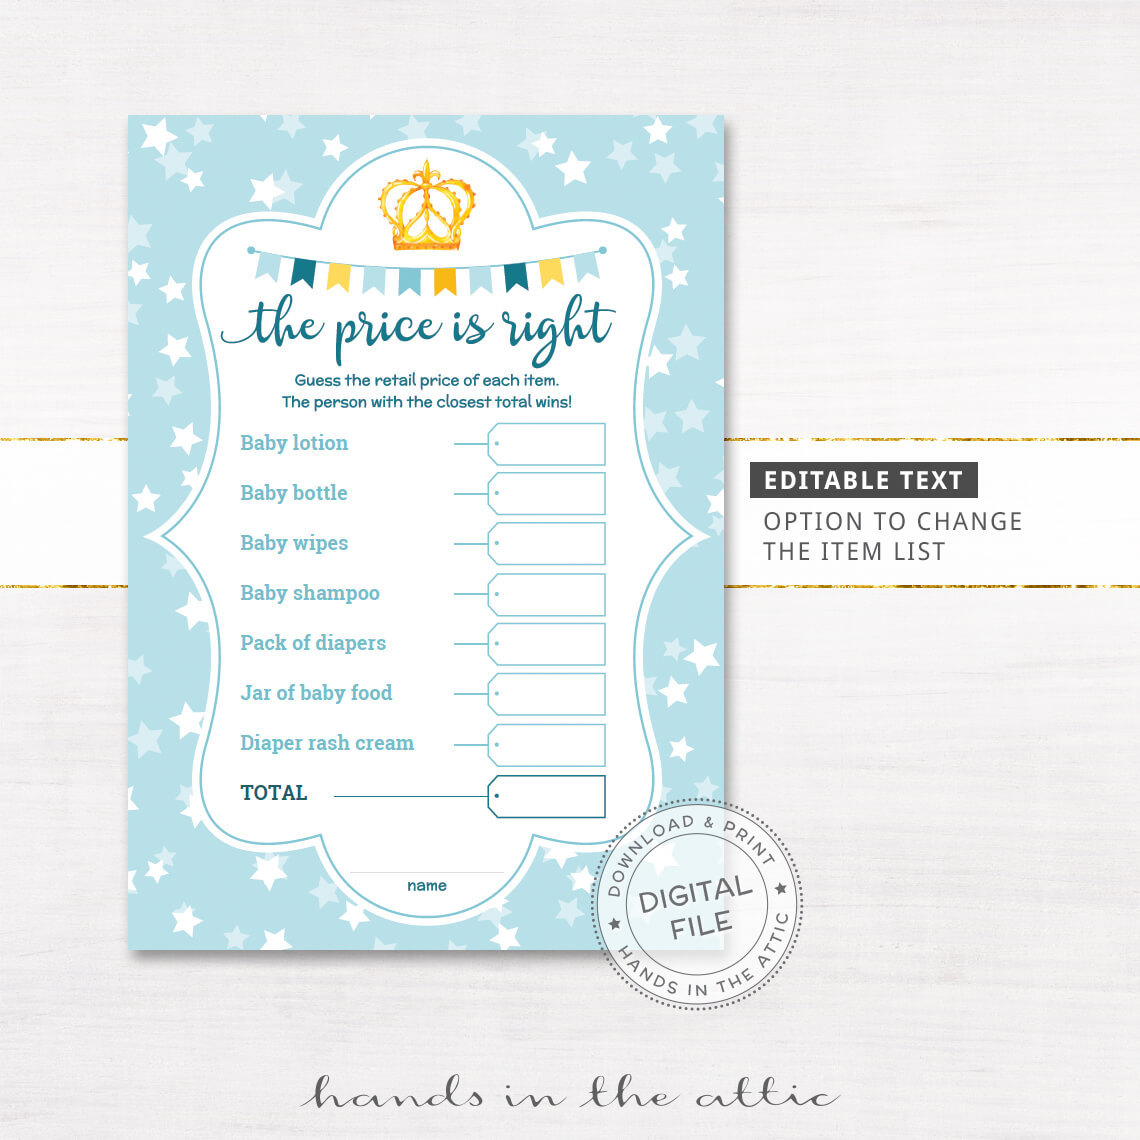 Cozy Blue Baby Boy Prince Price Is Editable Baby Shower Price Is Right Baby Shower Game Editable Printable Price Is Right Baby Shower Game Directions Price Is Right Baby Shower Game How To Play Image baby shower Price Is Right Baby Shower Game